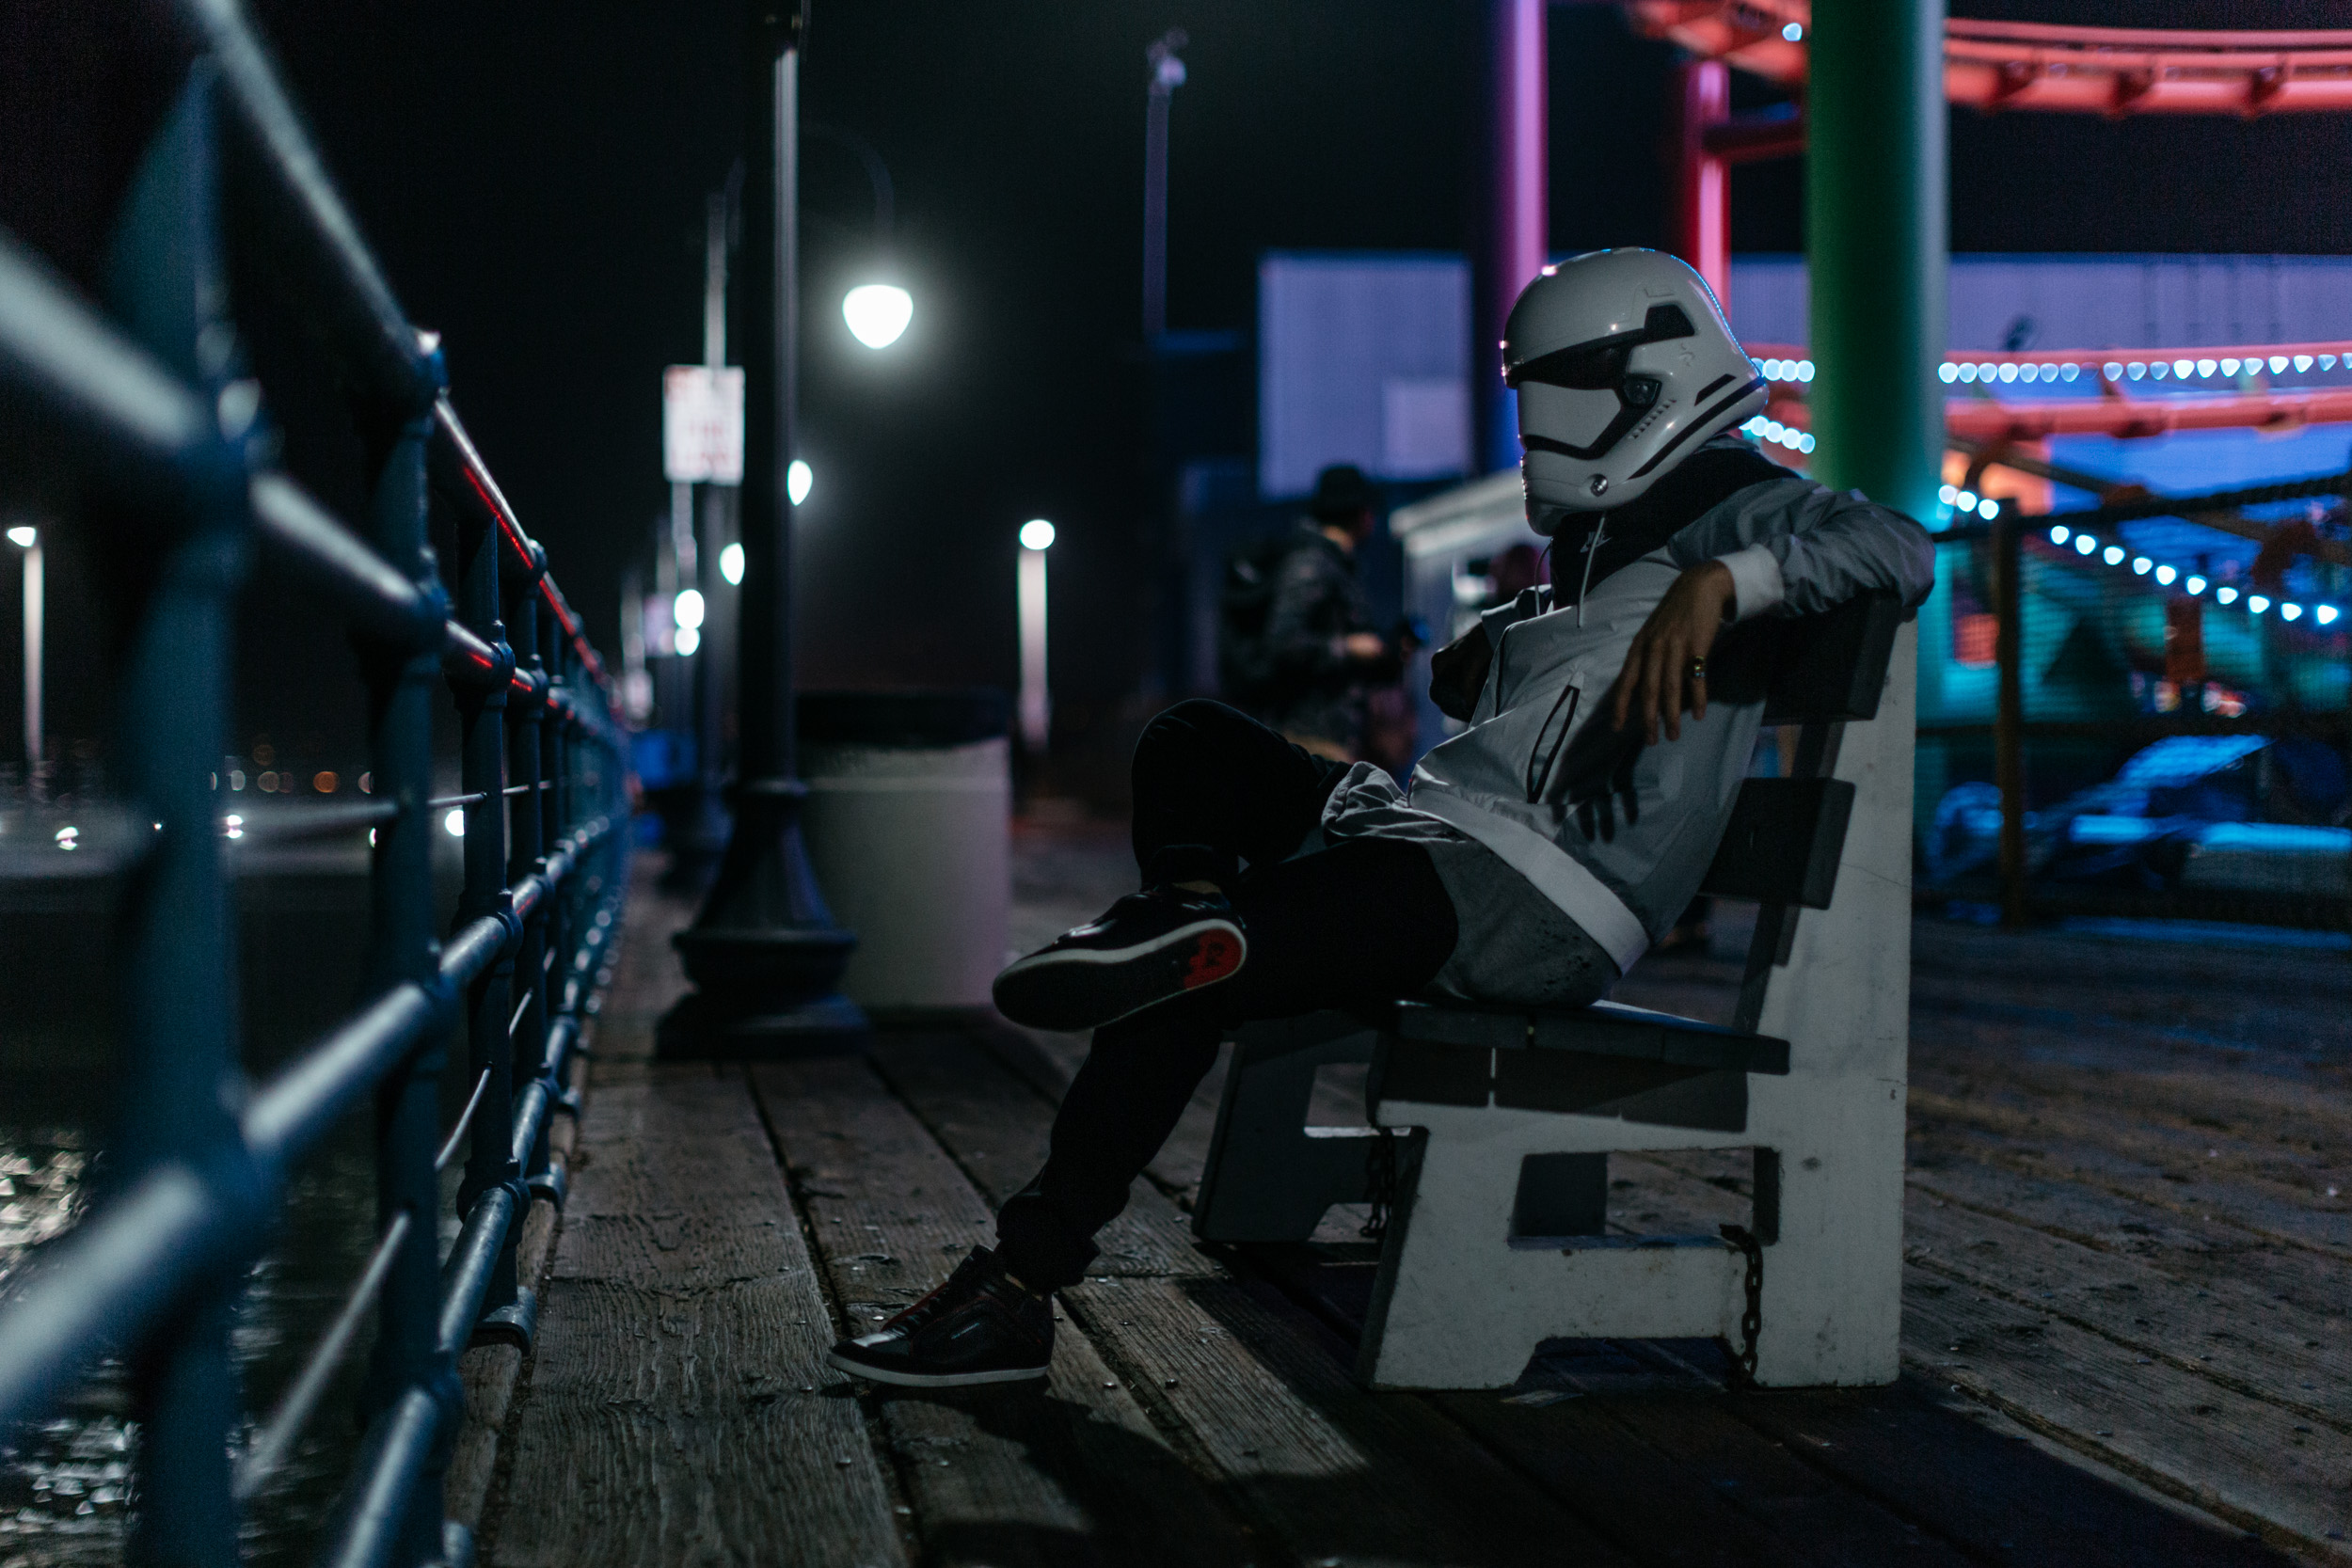 justfeng ryan feng vibrvncy star wars storm trooper santa monica photography jino abad abadimage